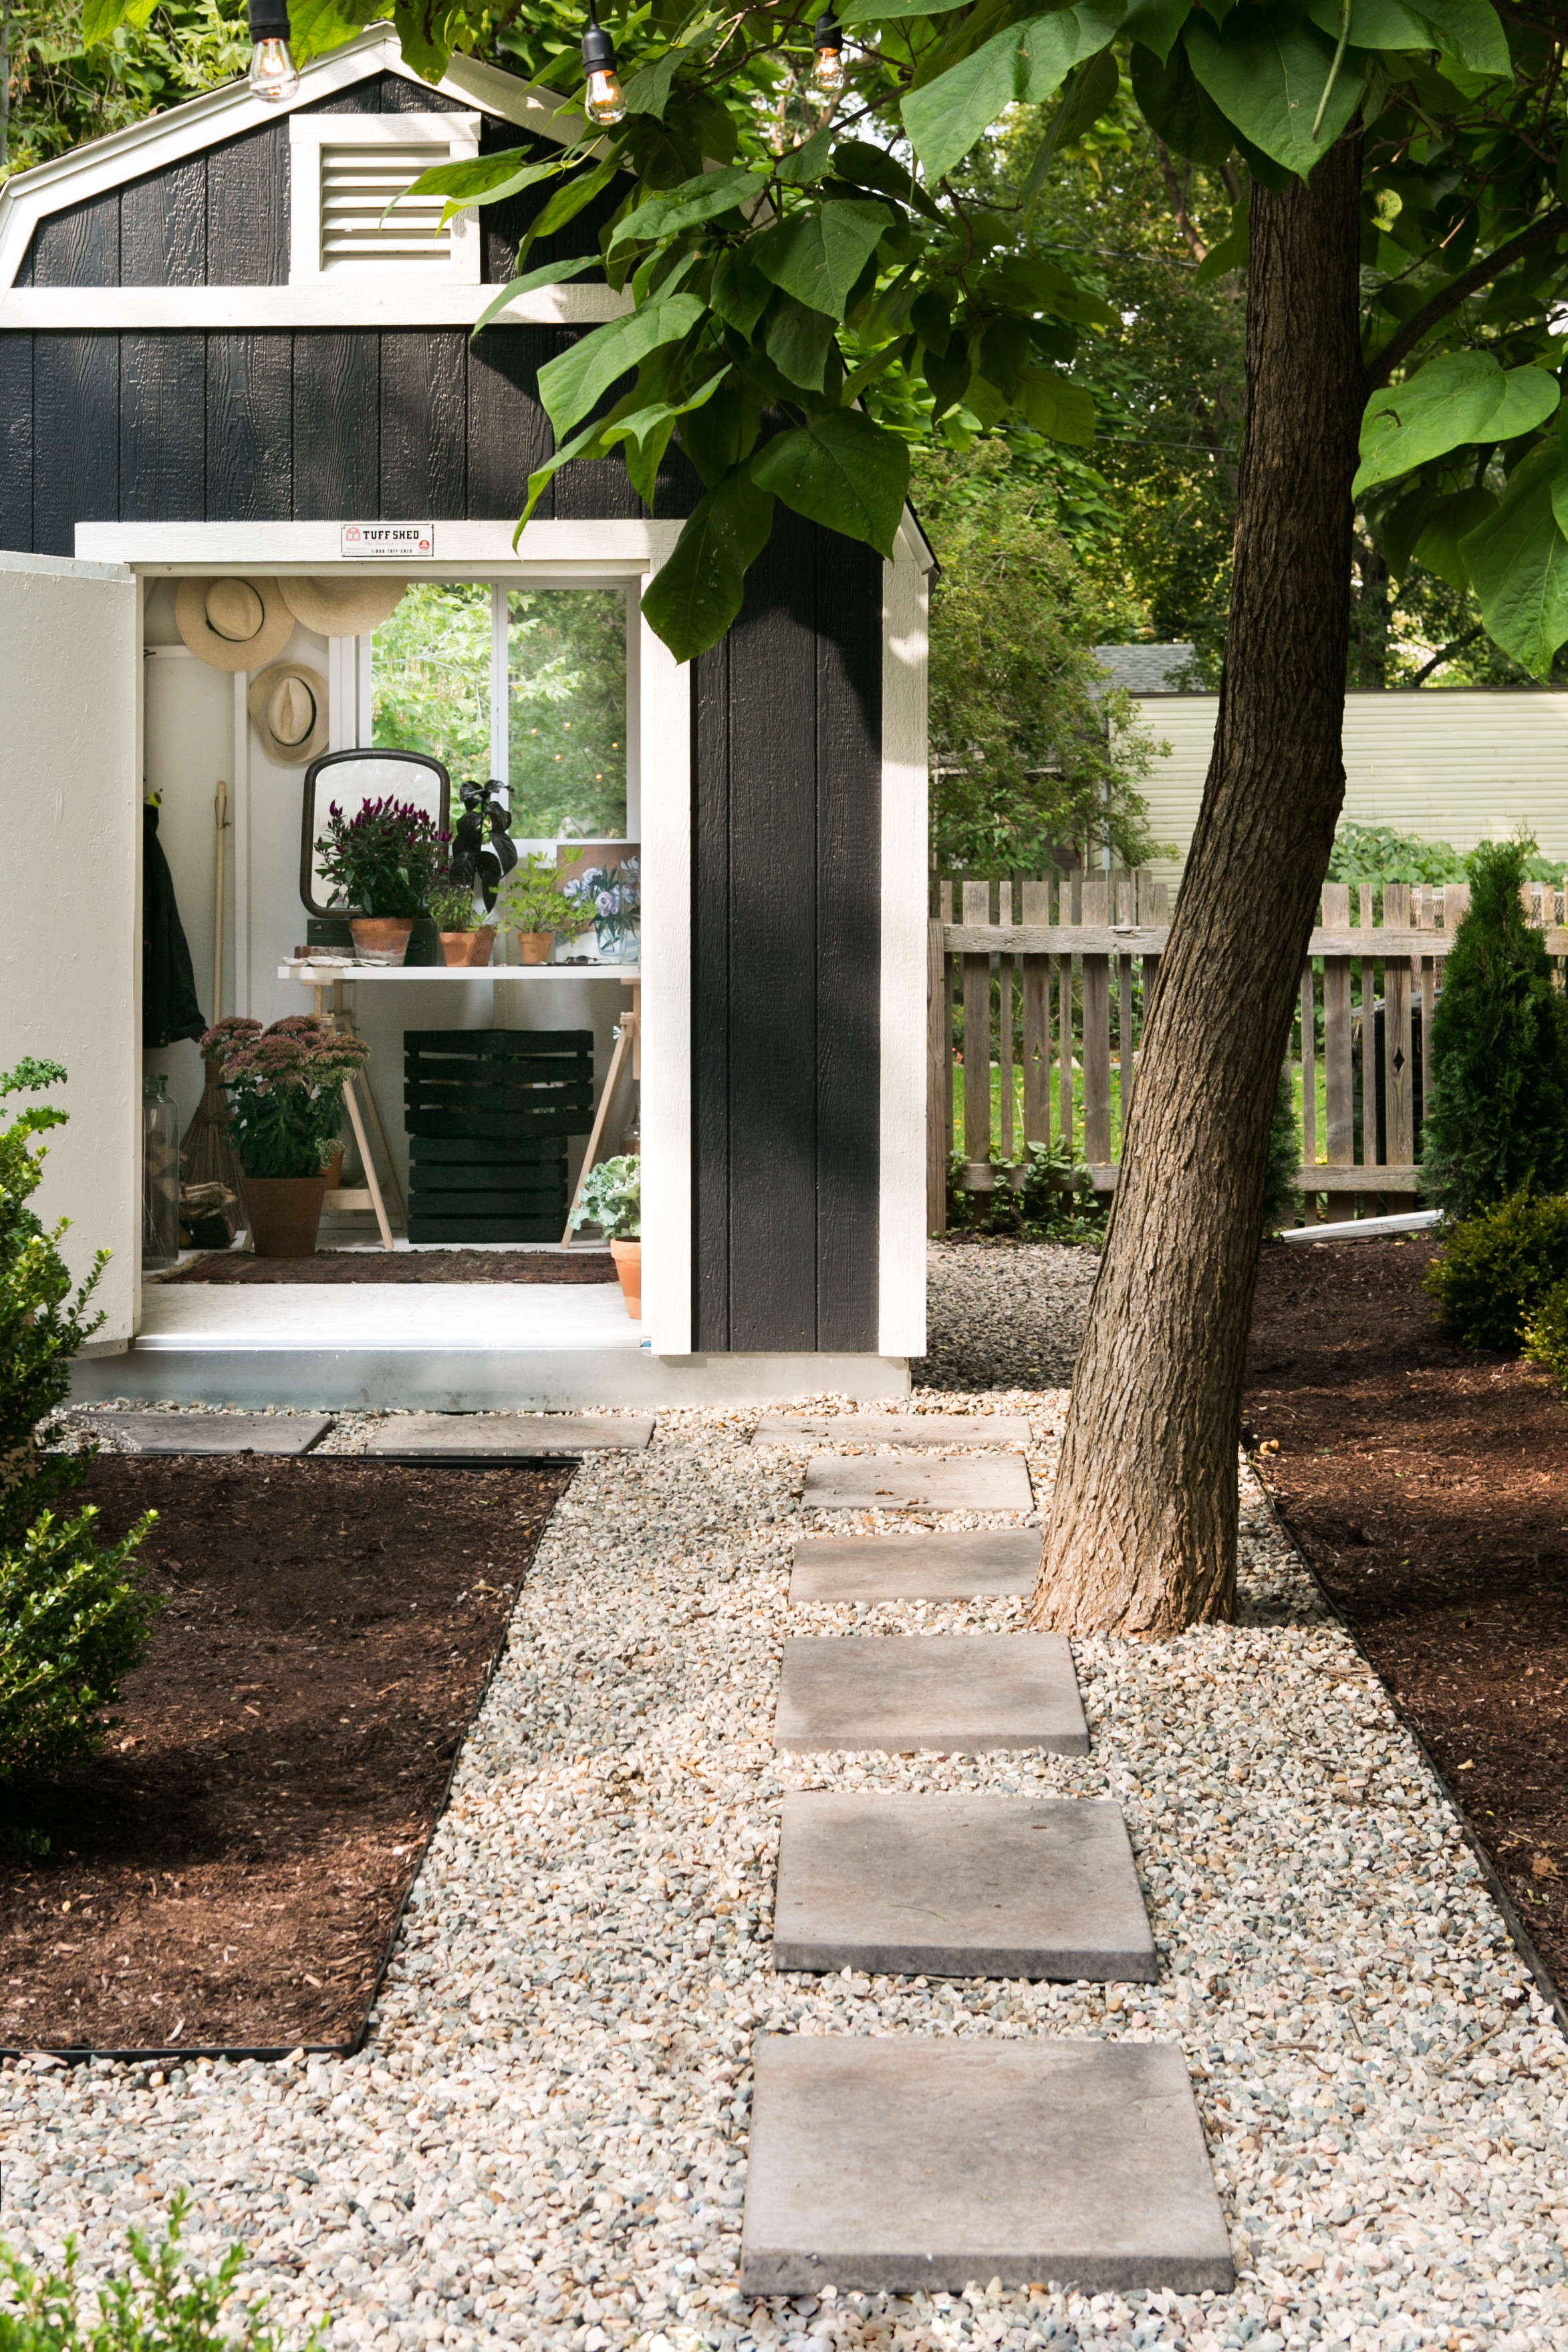 Landscaping 10 Clever Gardening Tips To Save Time Gardenista